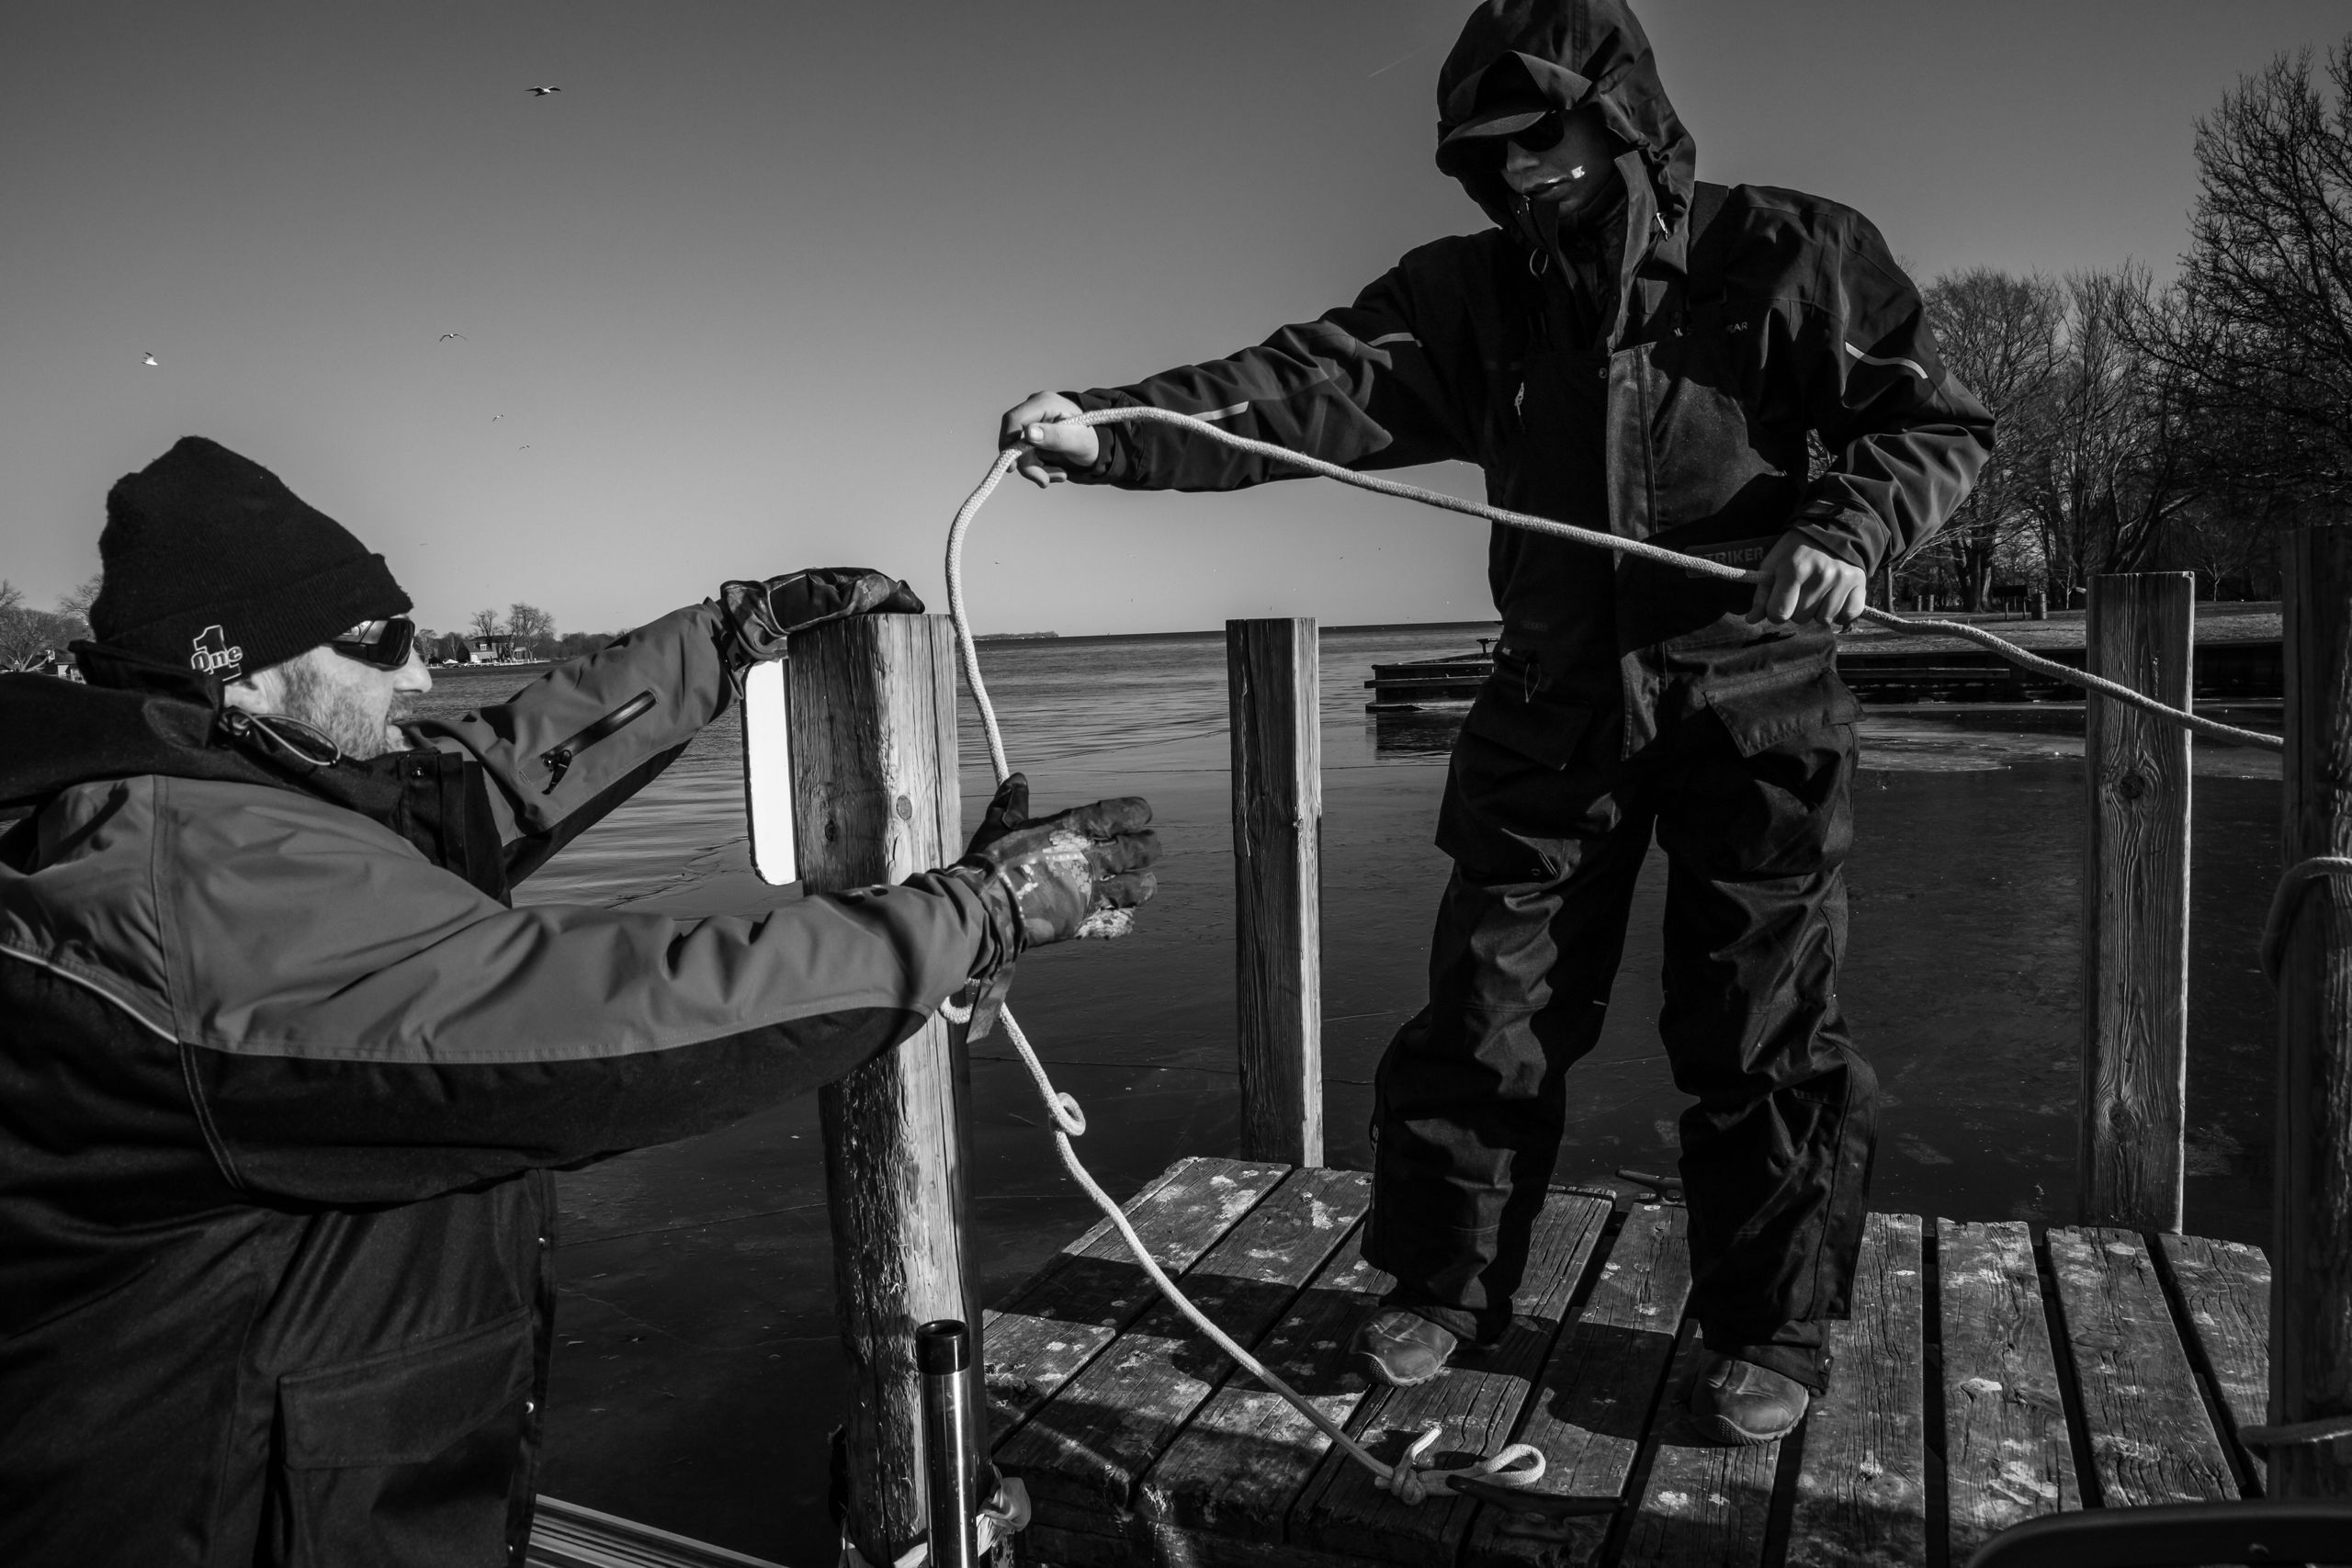 George Cini Sr. and George Cini Jr. take their boat out to fish on the waters of Lake Erie on Feb. 22. The air is frigid, but